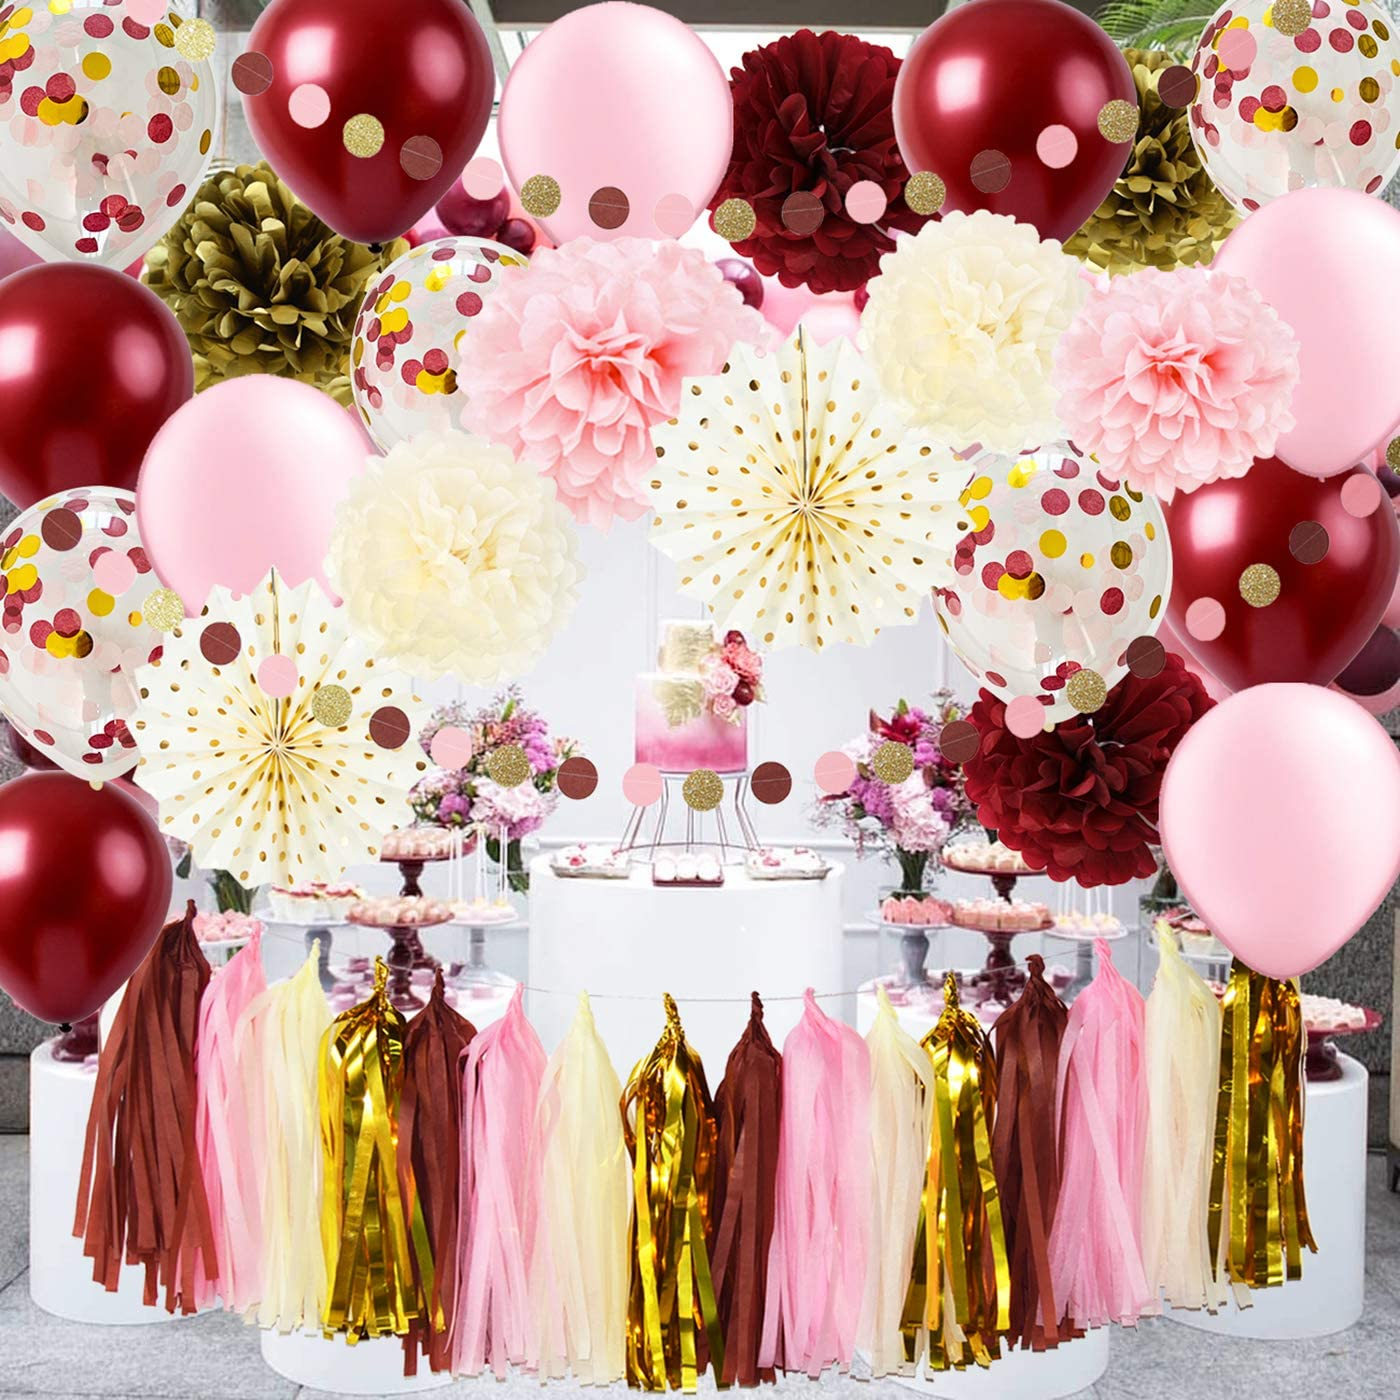 Qian's Party Burgundy Pink Gold Birthday Decorations for Women Fall in Love Bridal Shower Decorations Bachelorette/Polka Dot Paper Fans Gold Confetti Balloons 30th/40th/50th Fall Birthday Party Decor